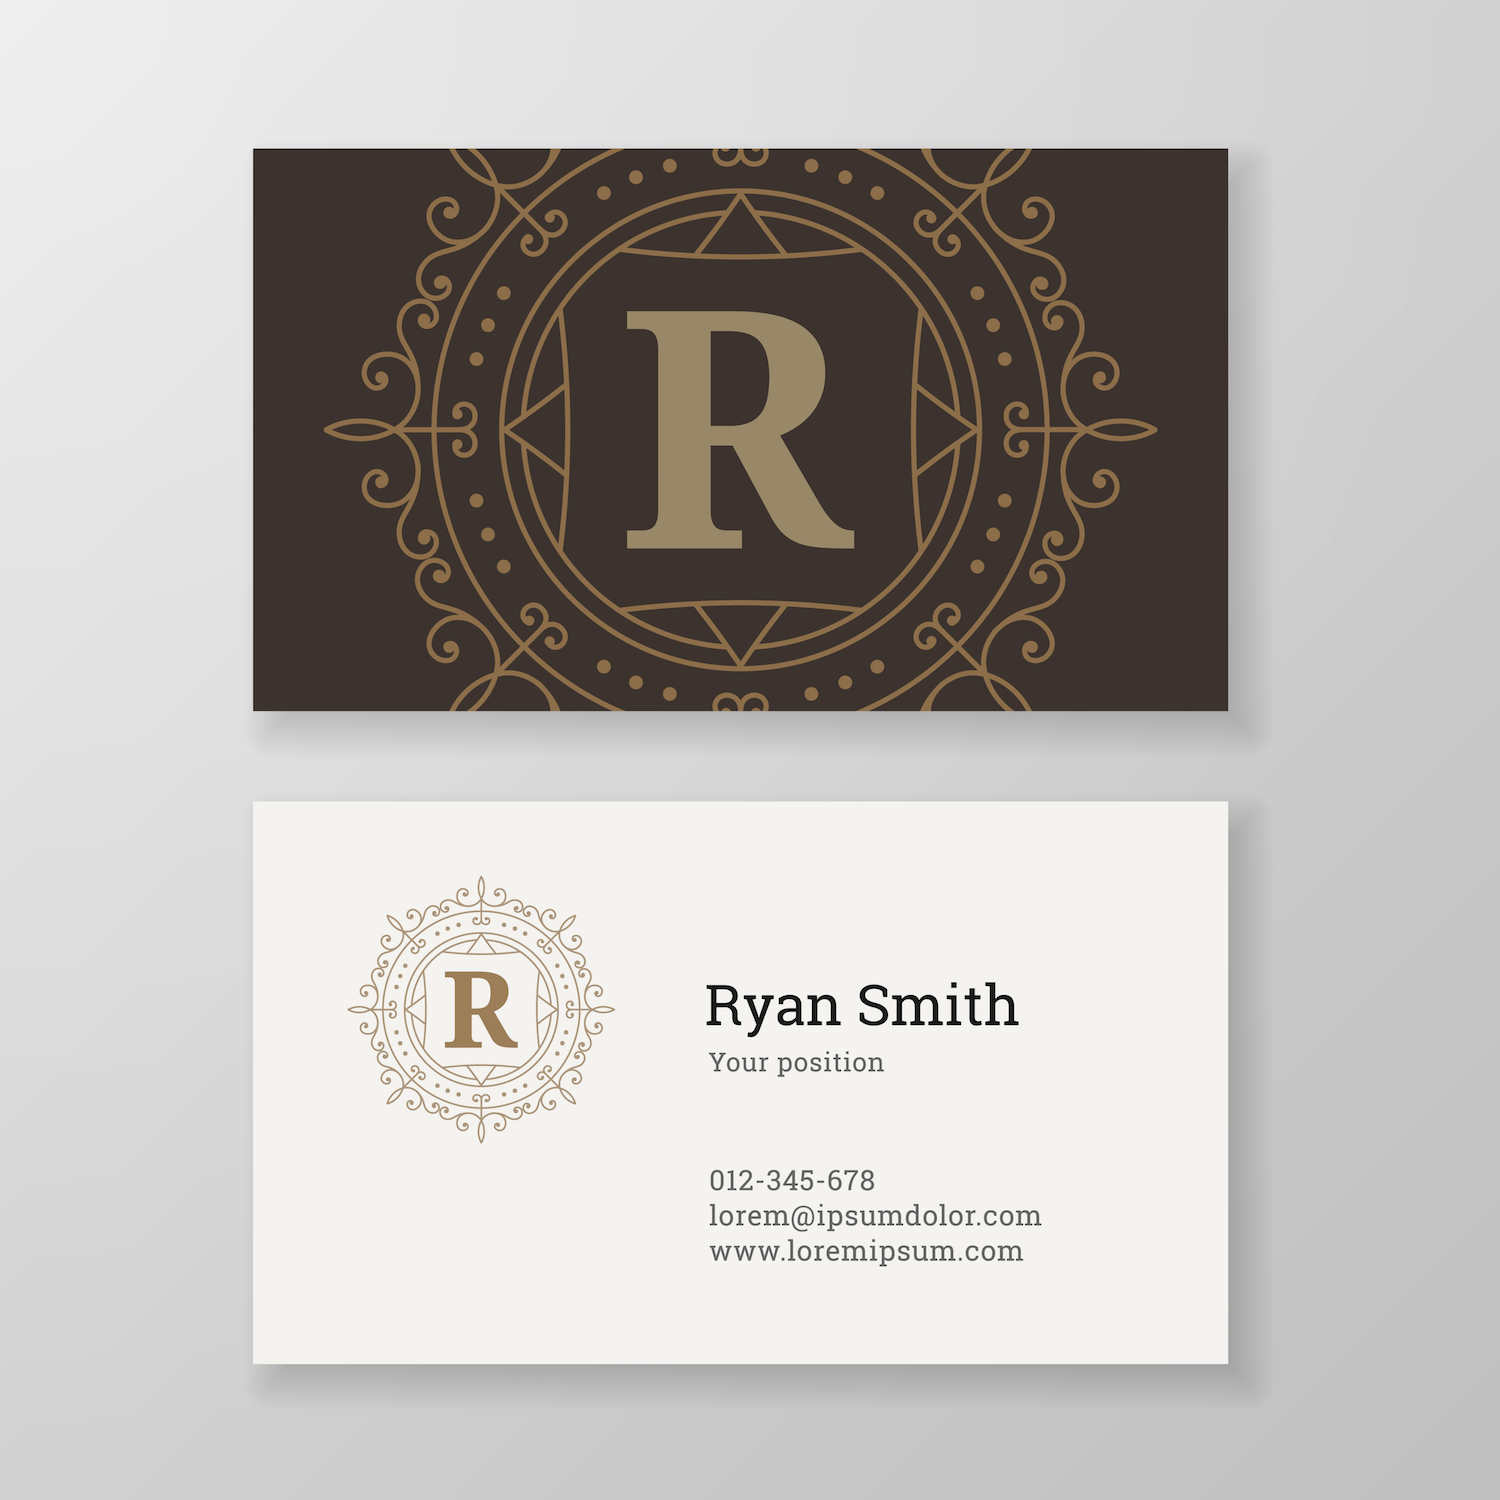 Business Cards In La Images Card Design And Card Template